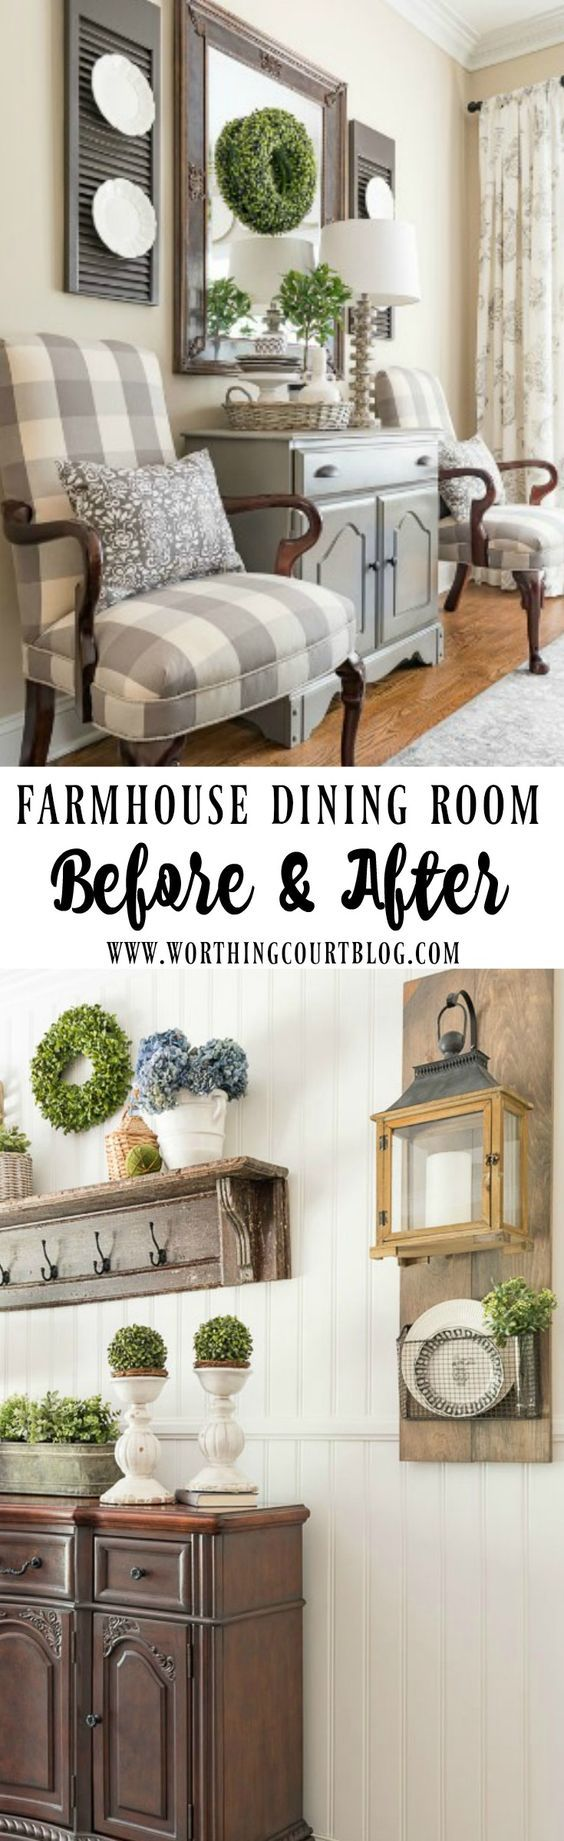 Farmhouse dining room makeover reveal featuring checks, greenery and texture. (via @suzyh)